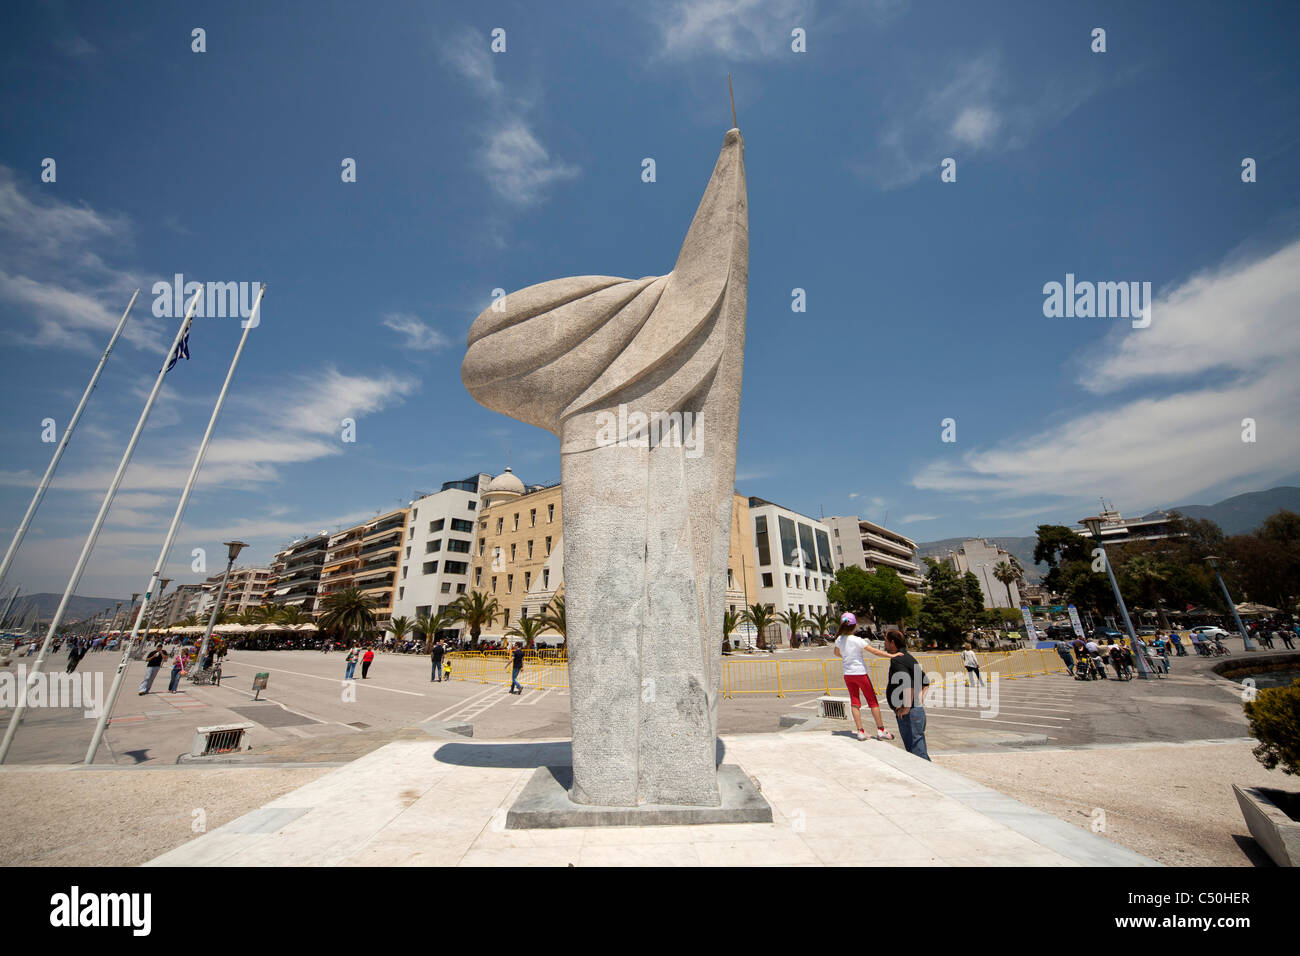 monument at the marina of the coastal port city Volos in Thessaly on the Greek mainland, Greece - Stock Image